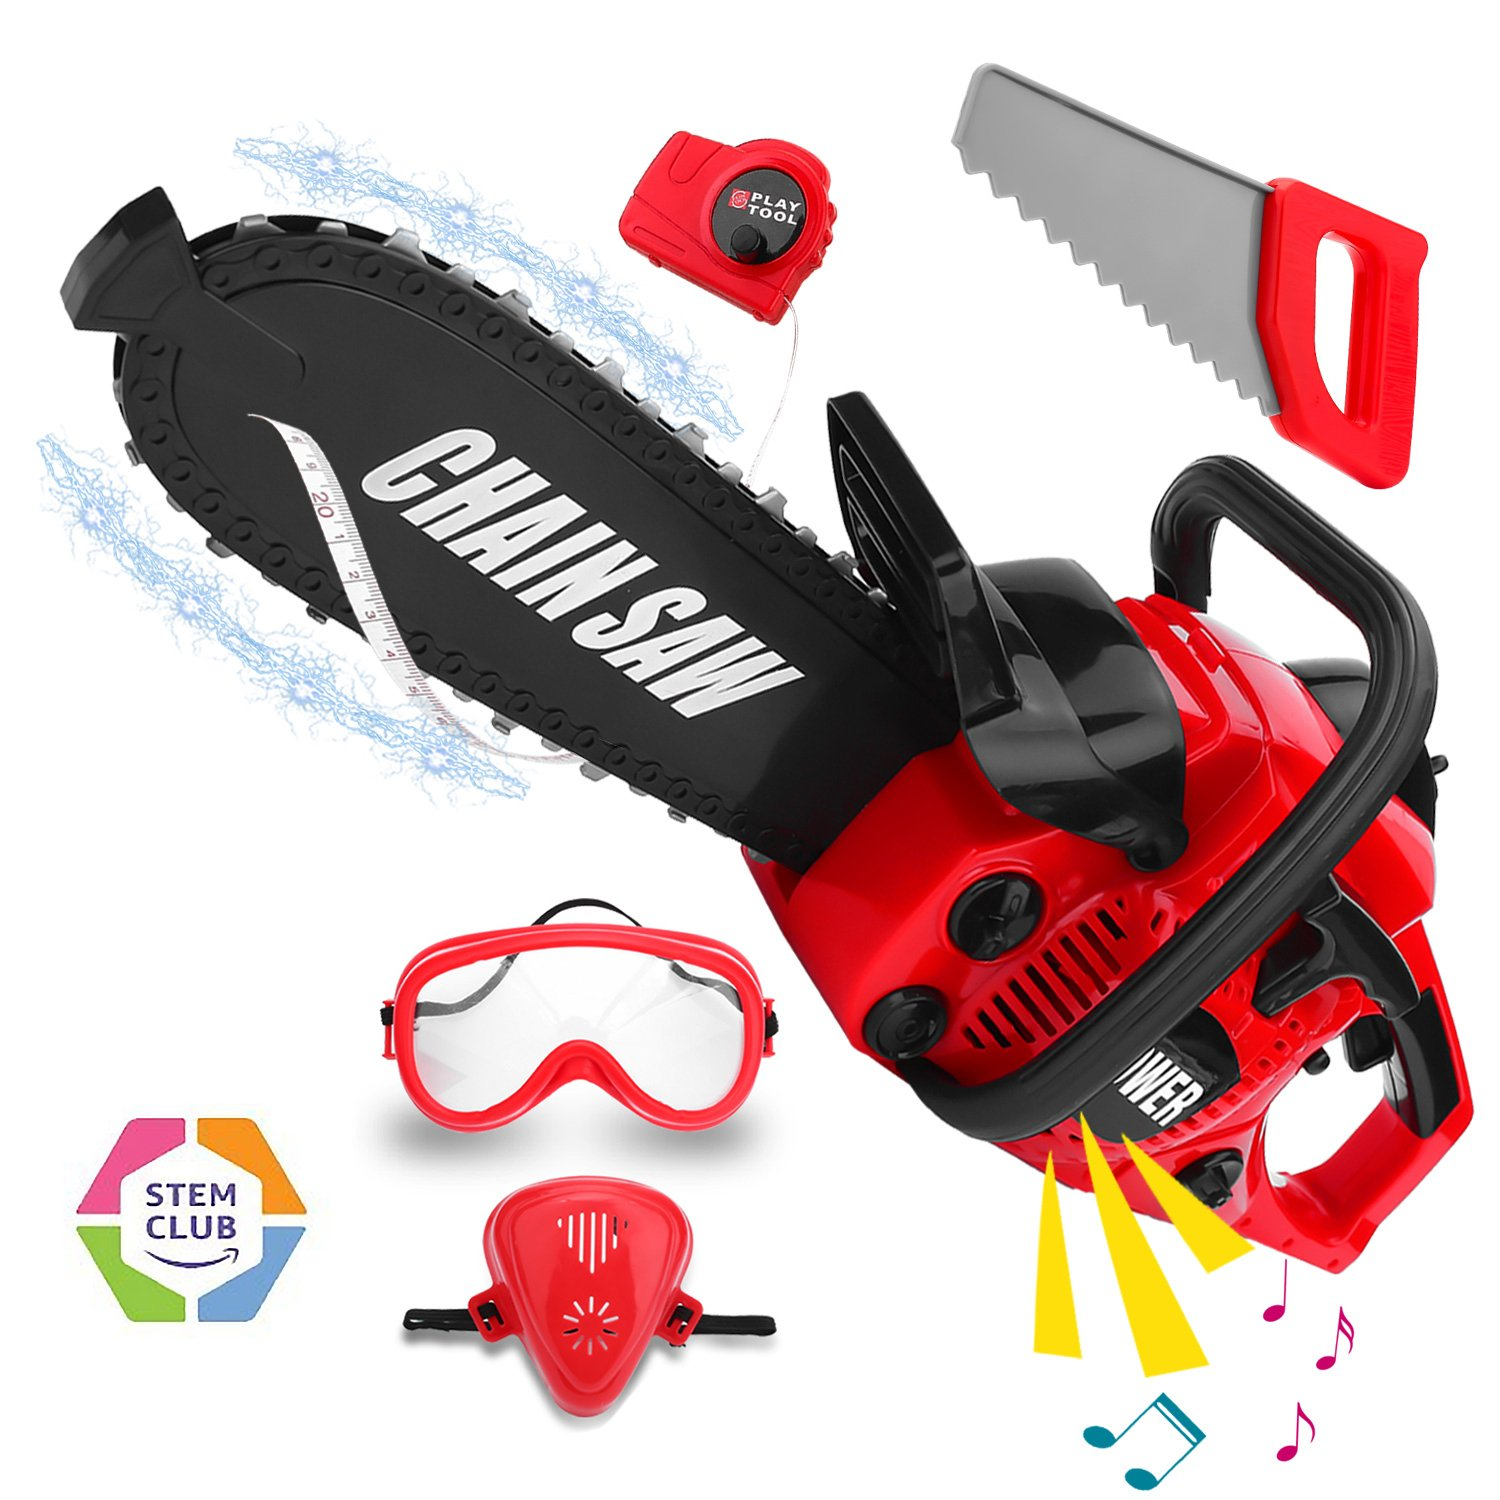 Kids Power Tool Toy Chainsaw, Boys Construction Play Toy Saw Set, Boys Pretend Play Toy Outdoor Lawn Toy Tools Chain Saw Set for Toddlers